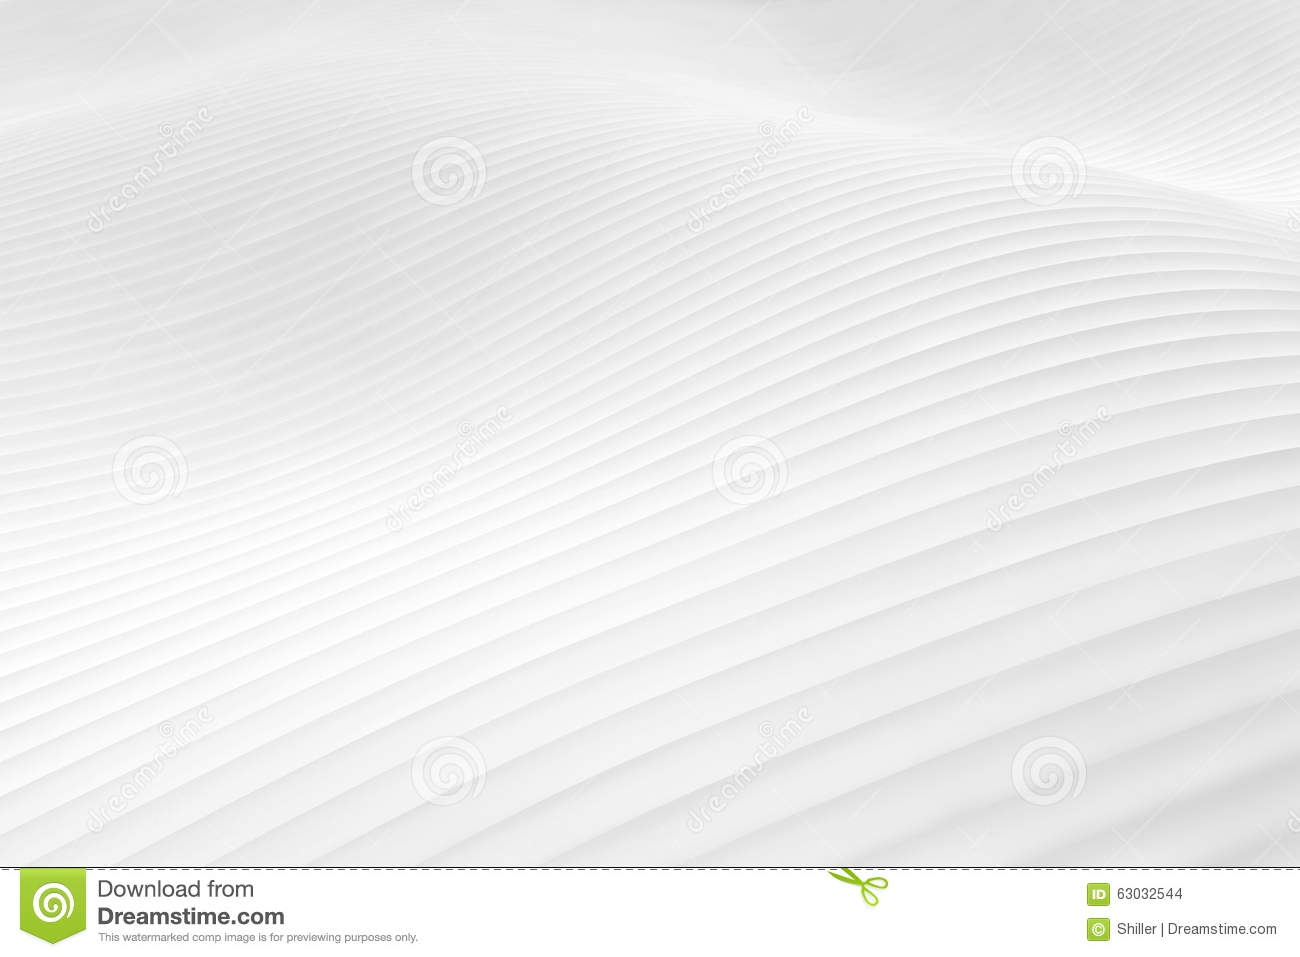 Snowy white hilly abstract winter landscape surface - horizontal background